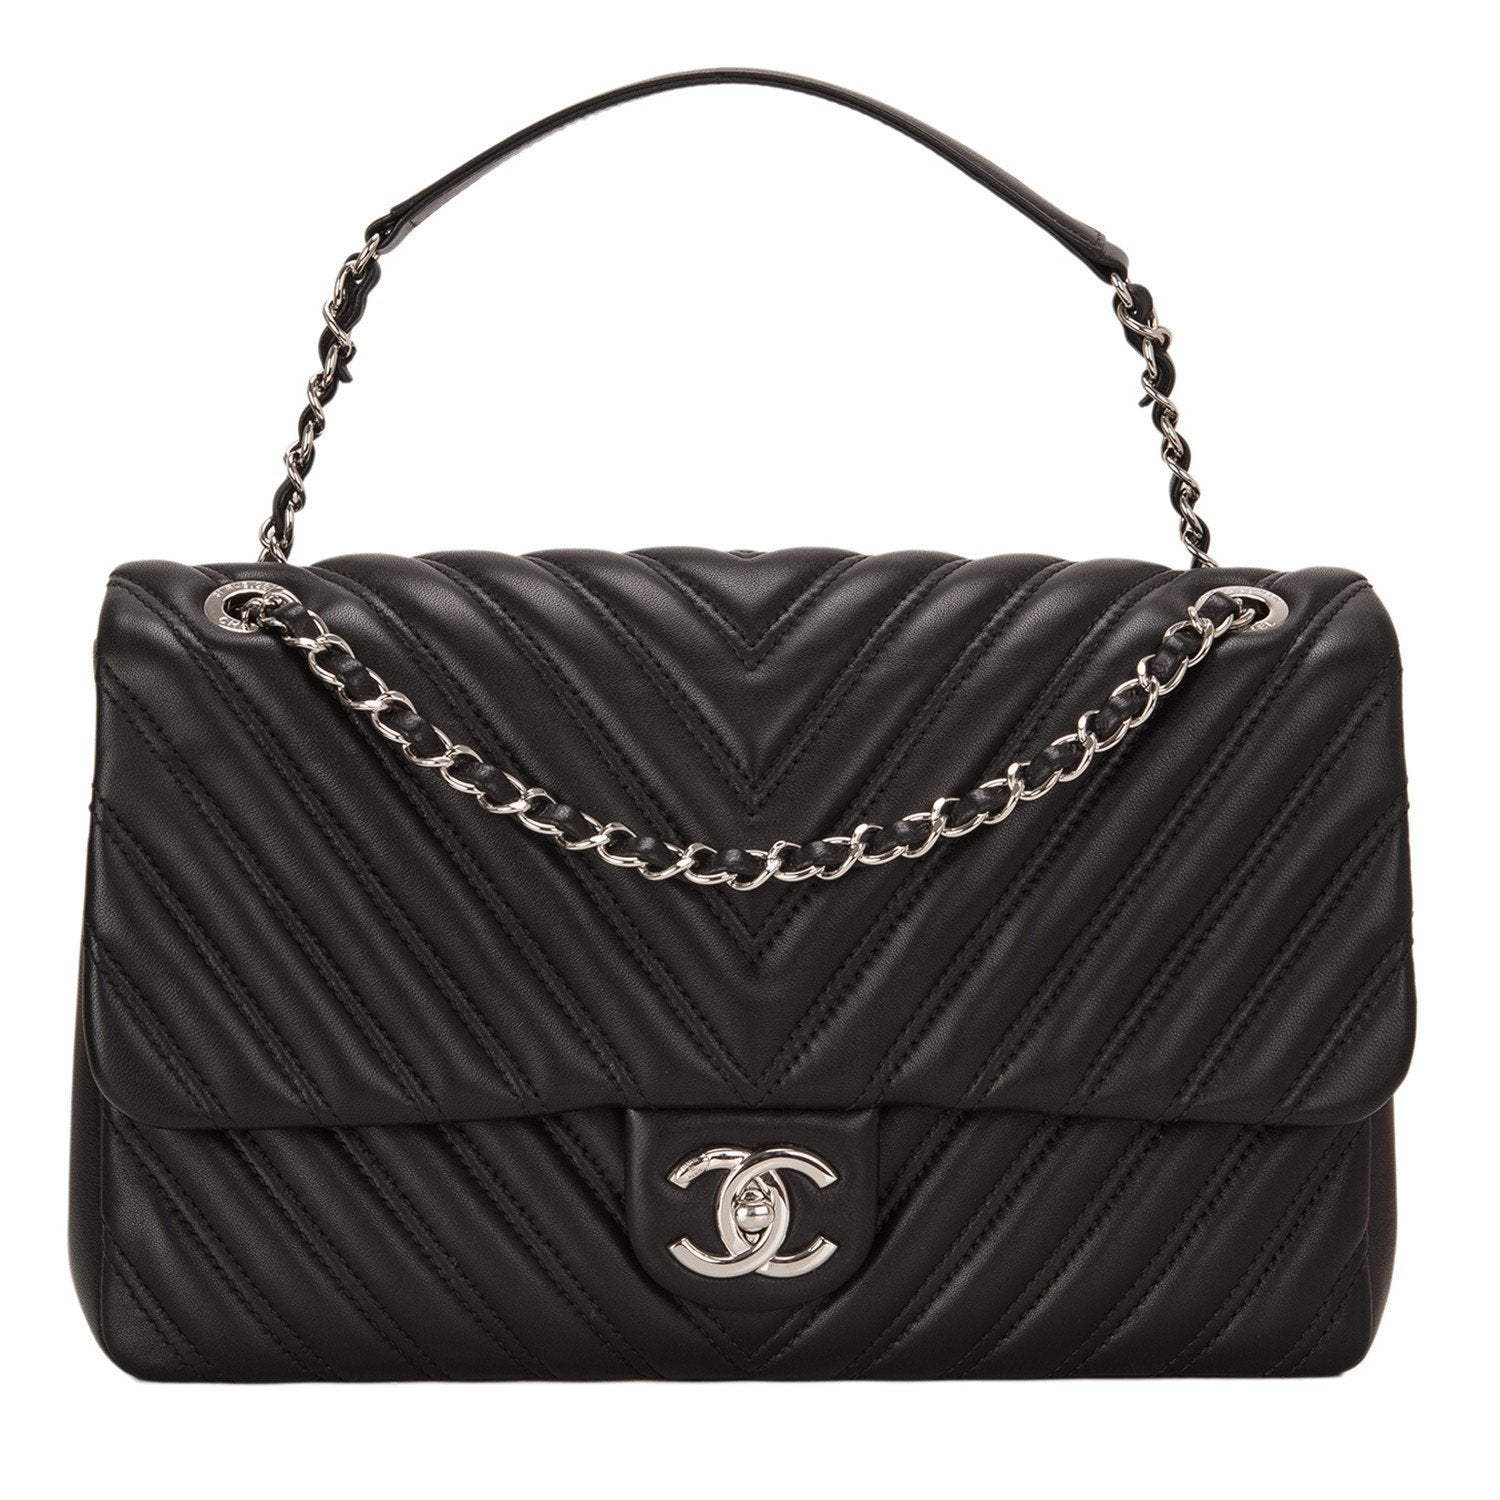 Chanel Black Chevron Lambskin Jumbo Flap Bag Handbags